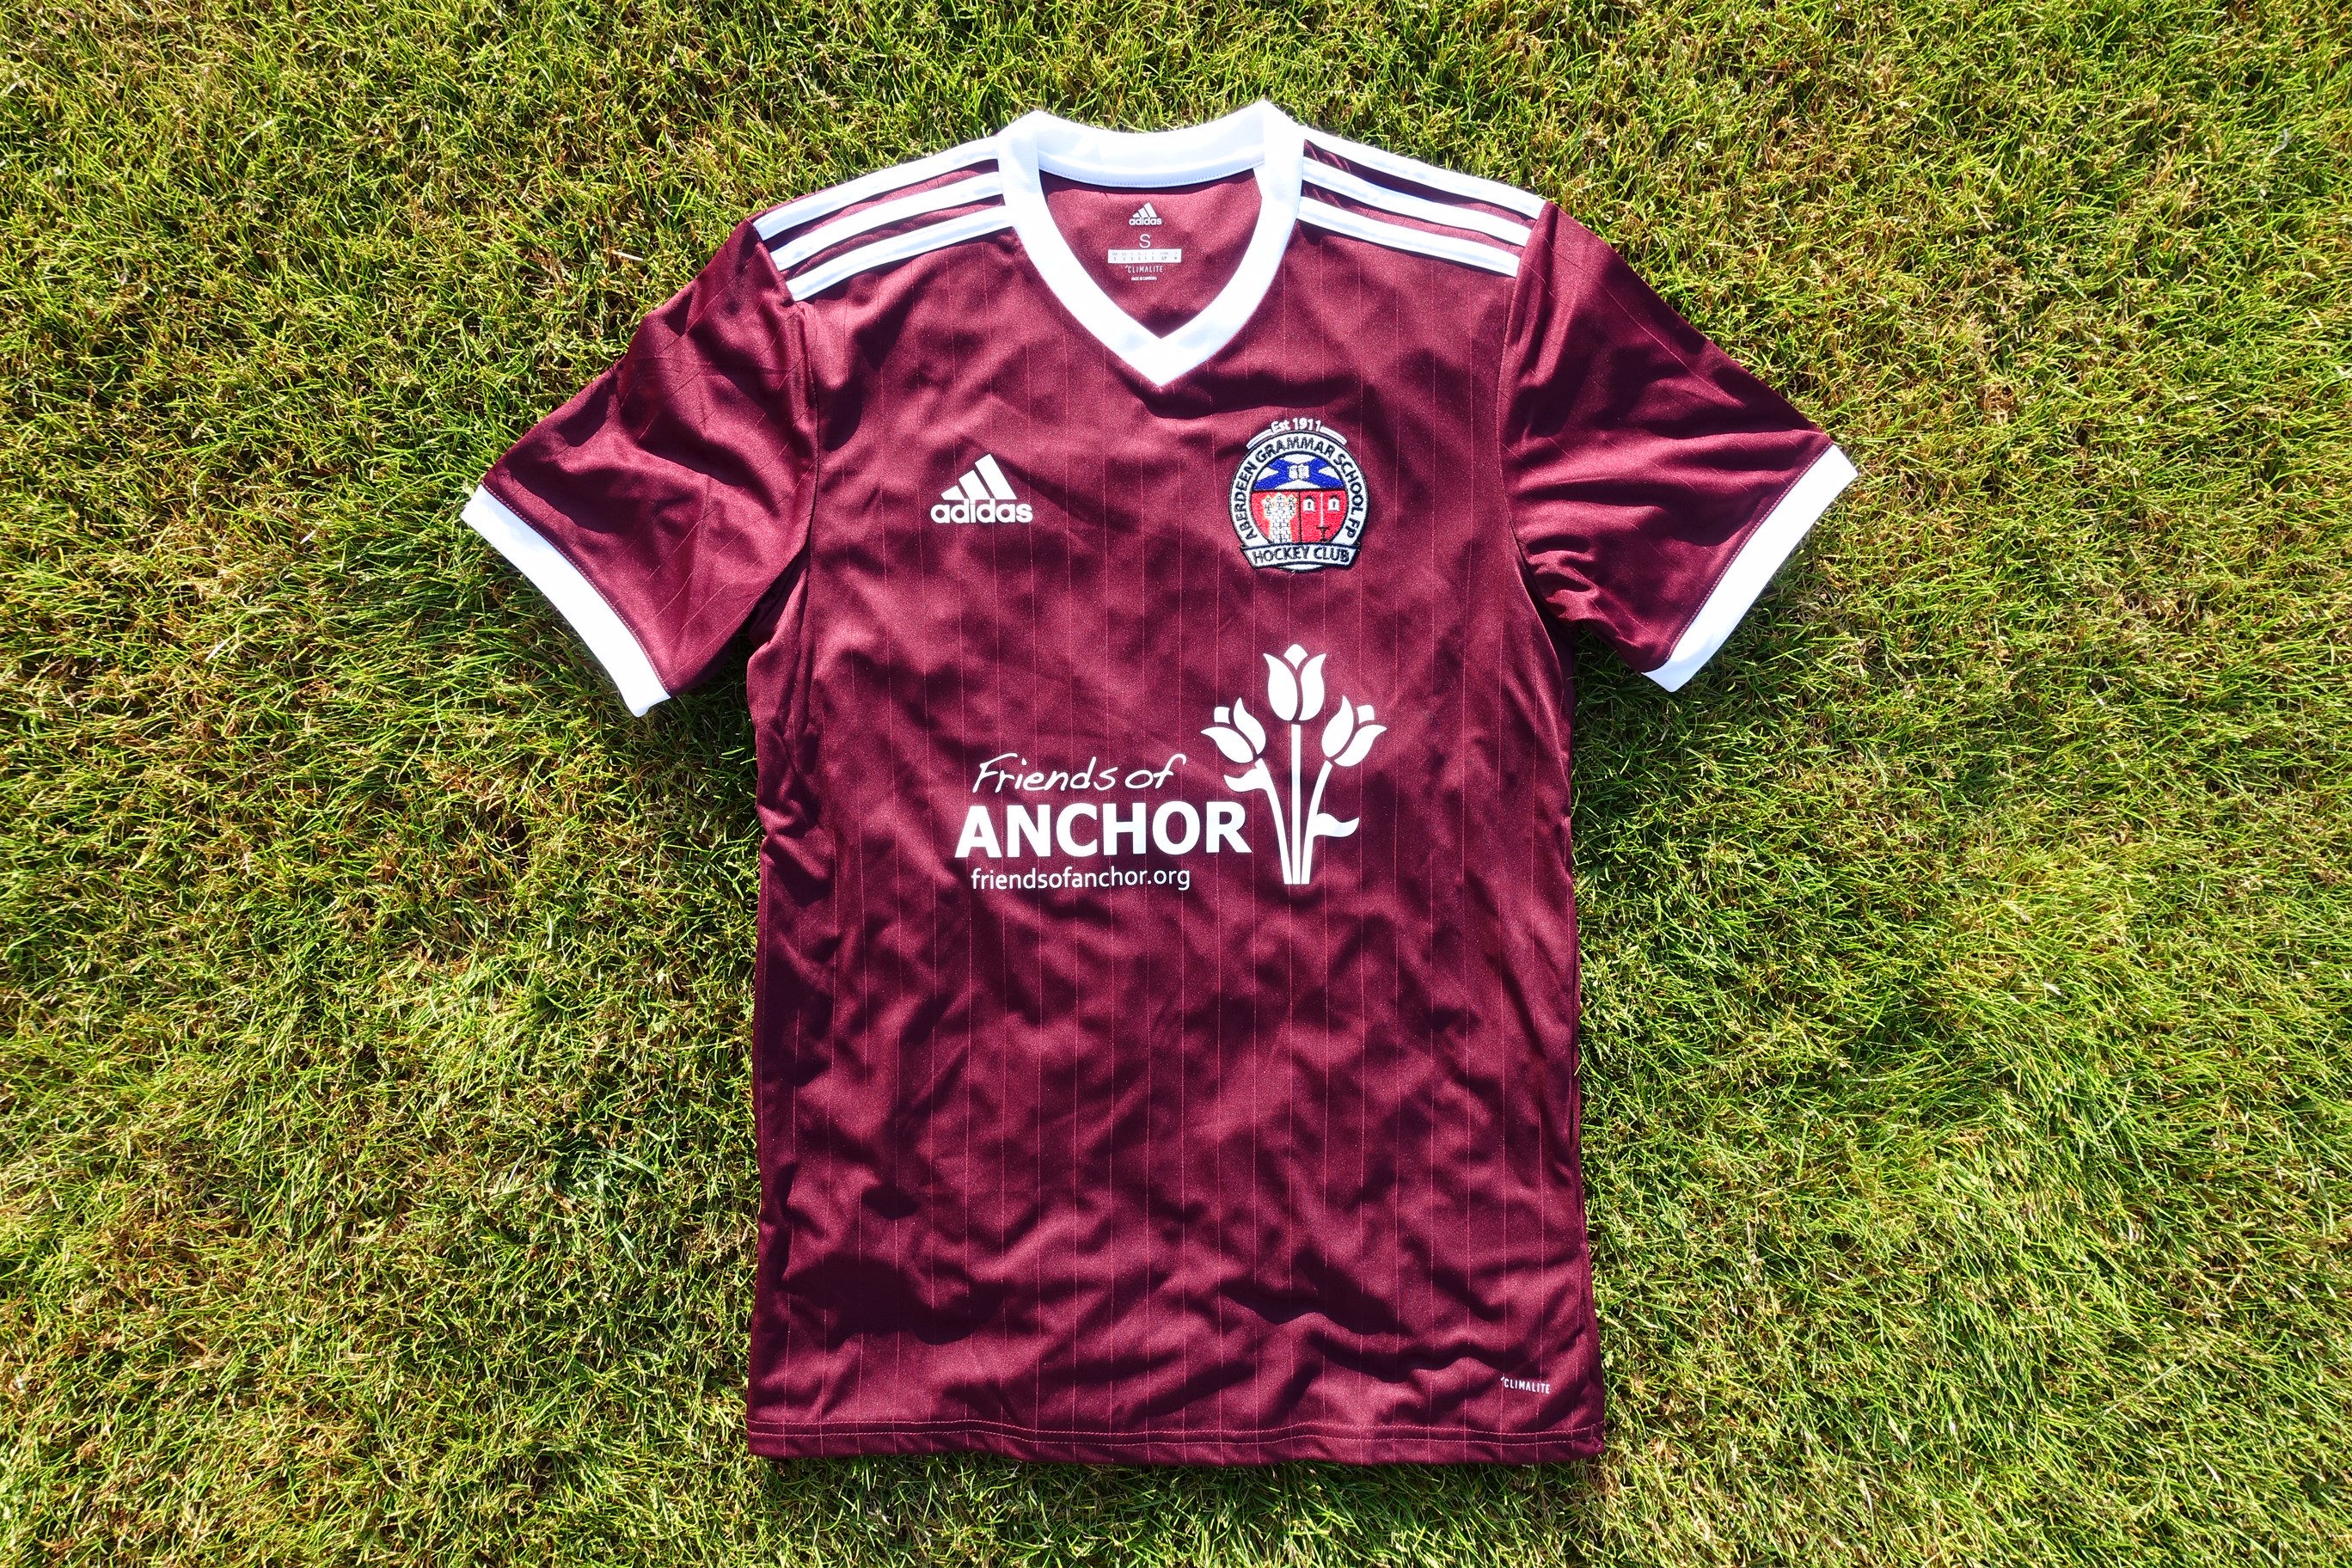 Aberdeen Grammar's hockey jersey with the cancer charity Friends of Anchor logo